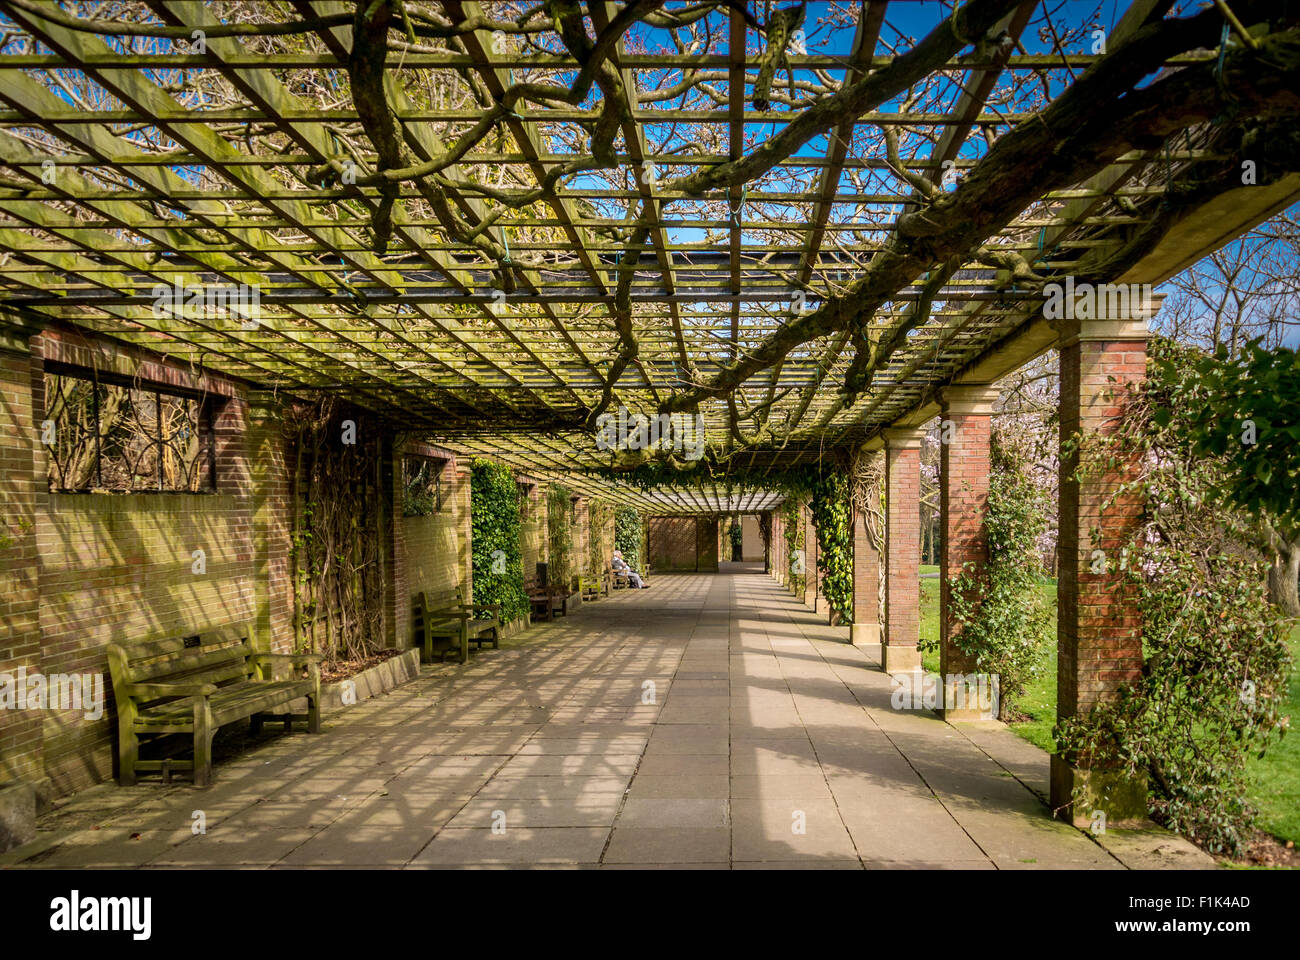 Shady Gardens Stock Photos & Shady Gardens Stock Images - Alamy